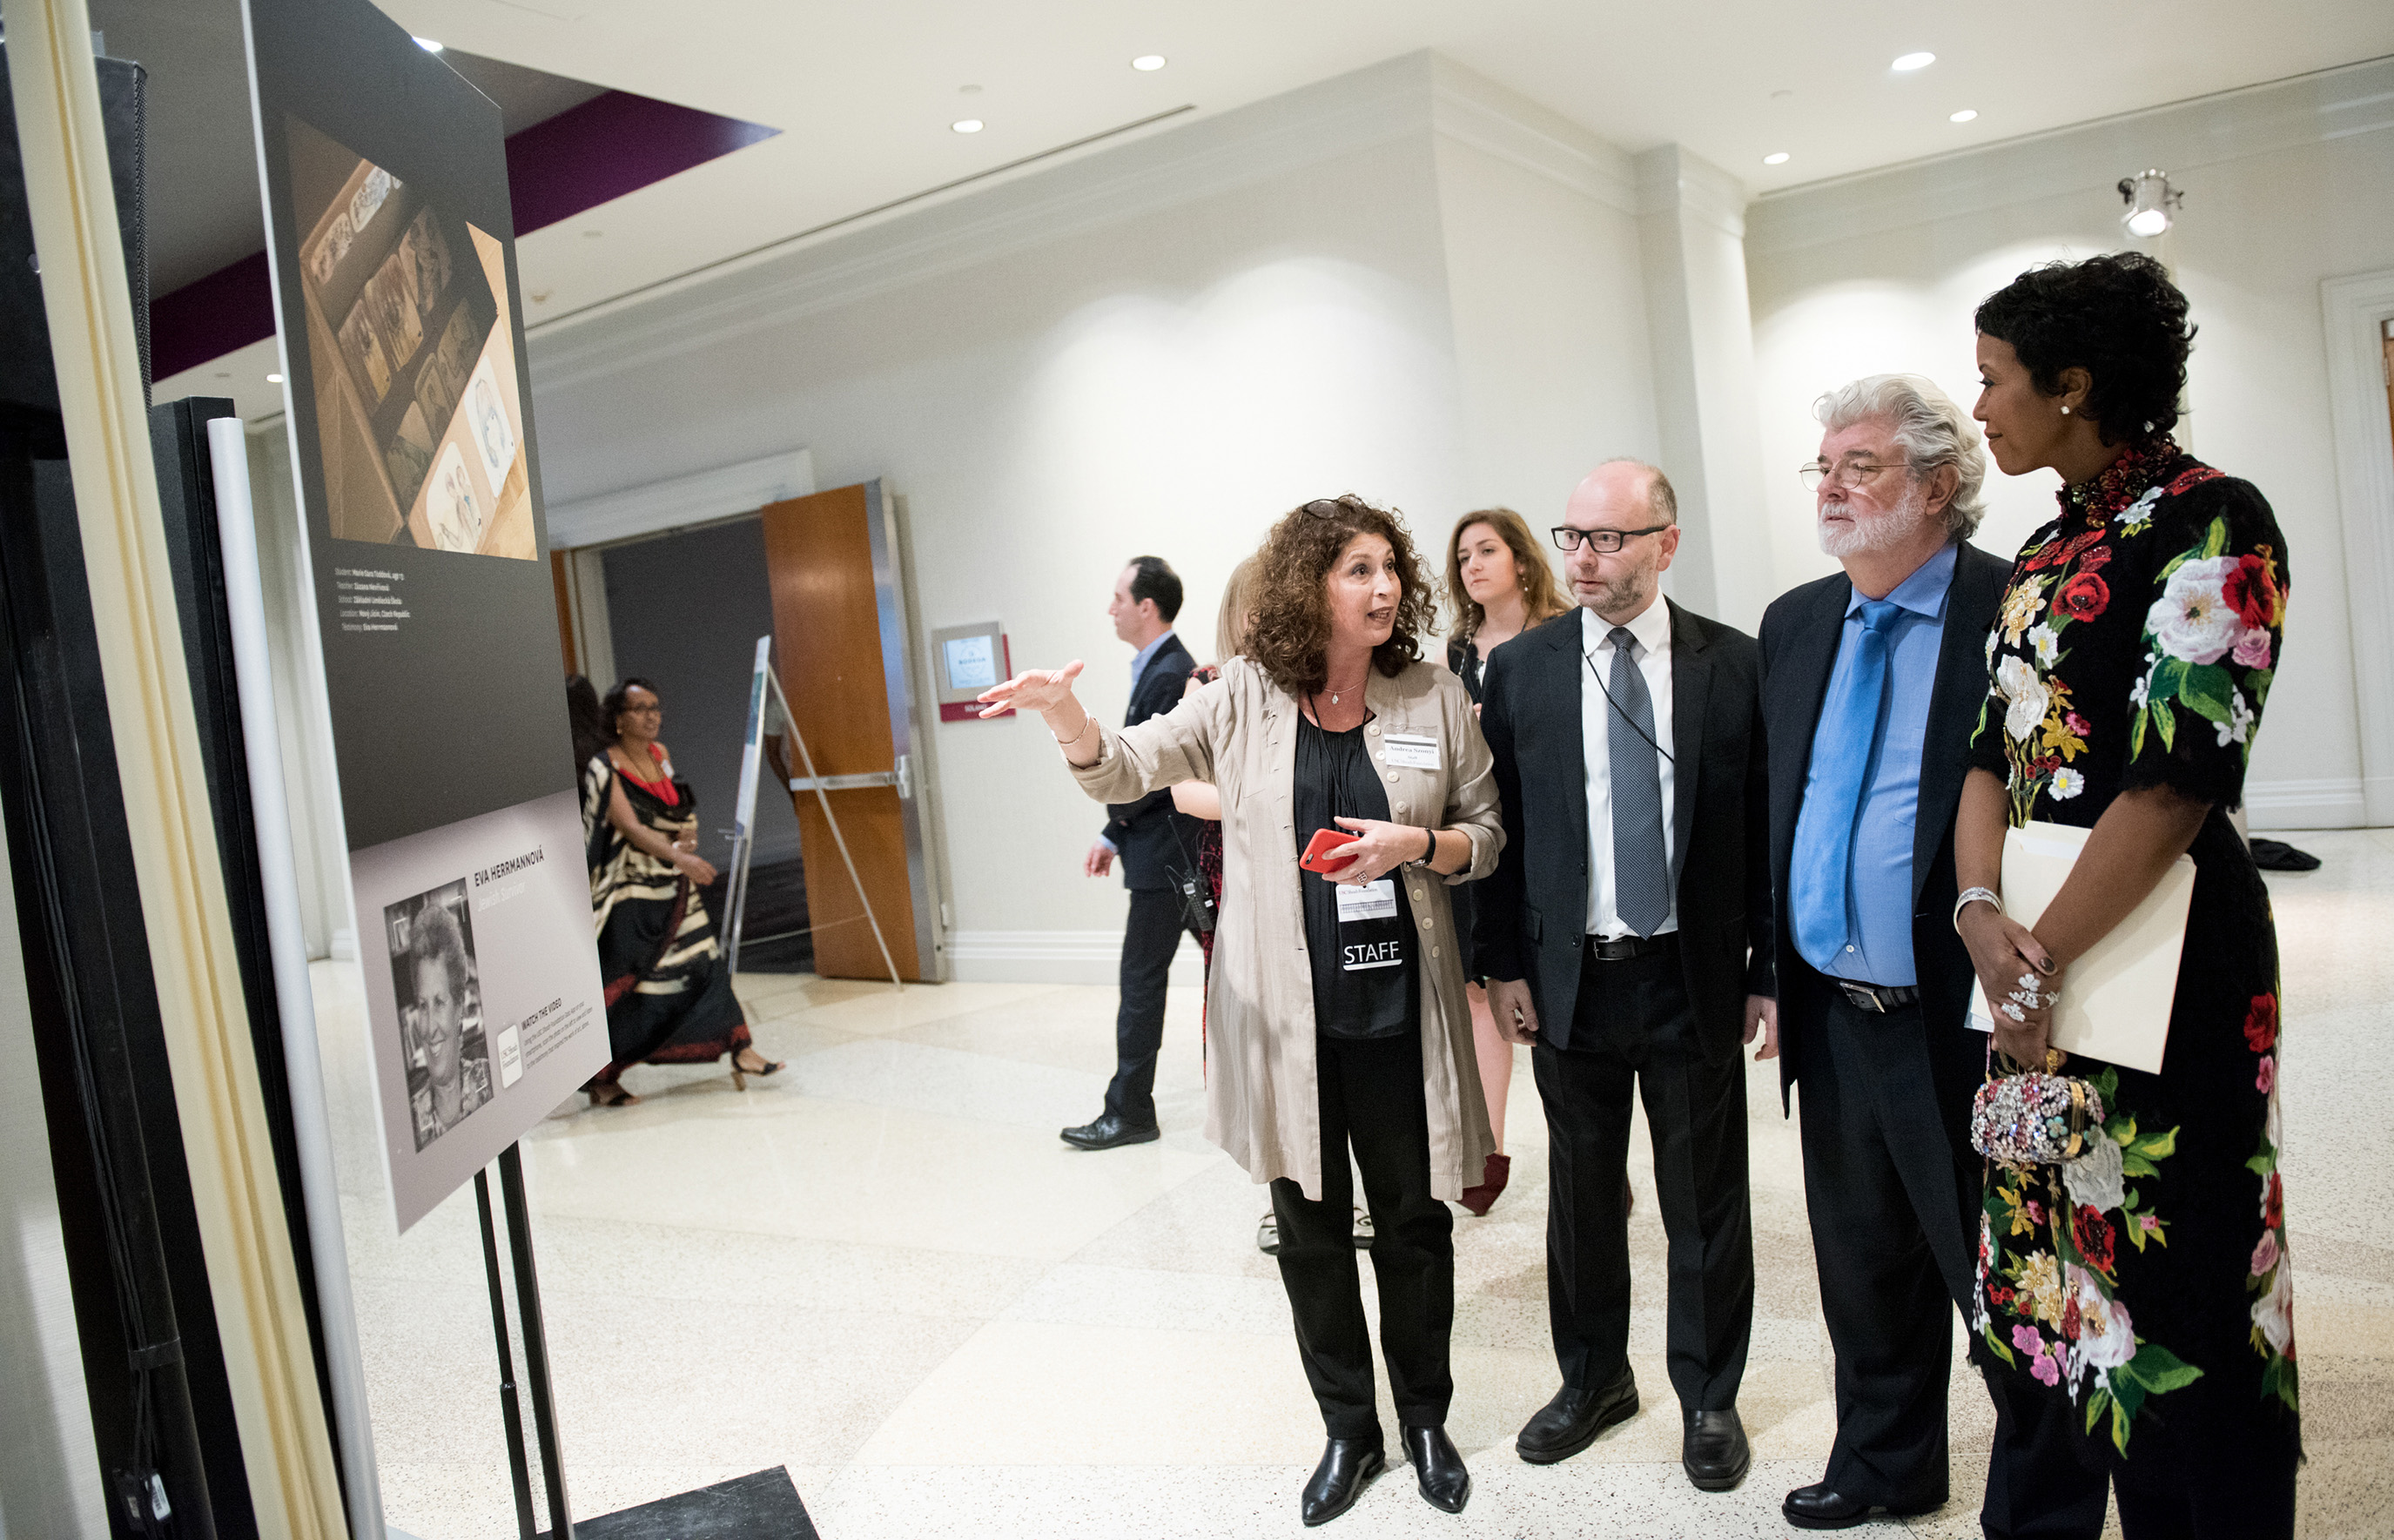 Andrea Szonyi shows the artwork to Stephen Smith, George Lucas and Mellody Hobson